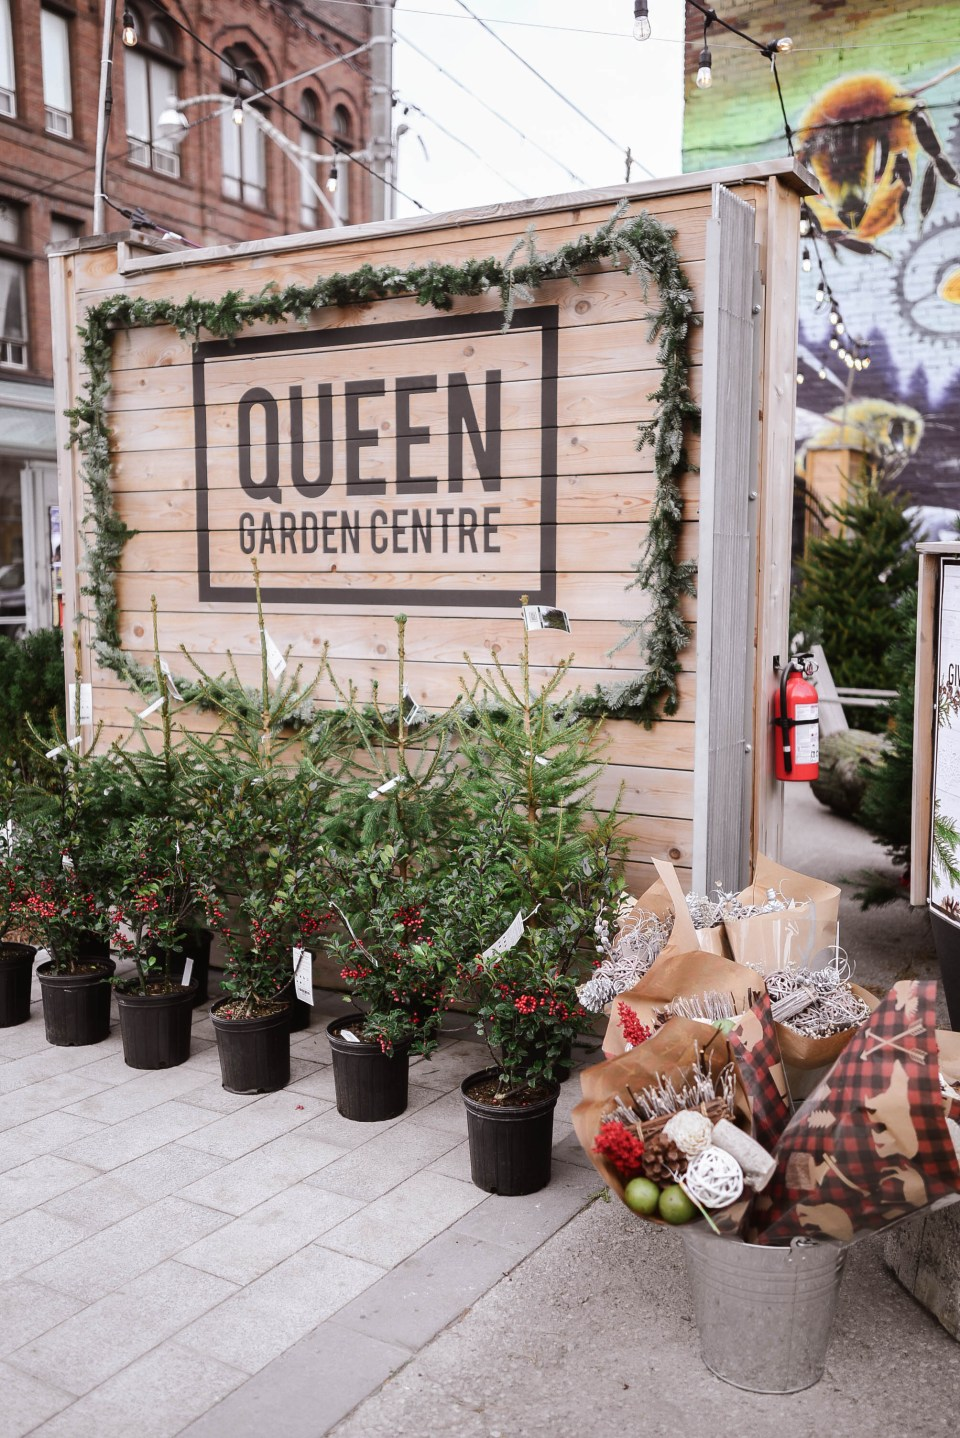 Queen Garden Centre Toronto - Christmas in the City